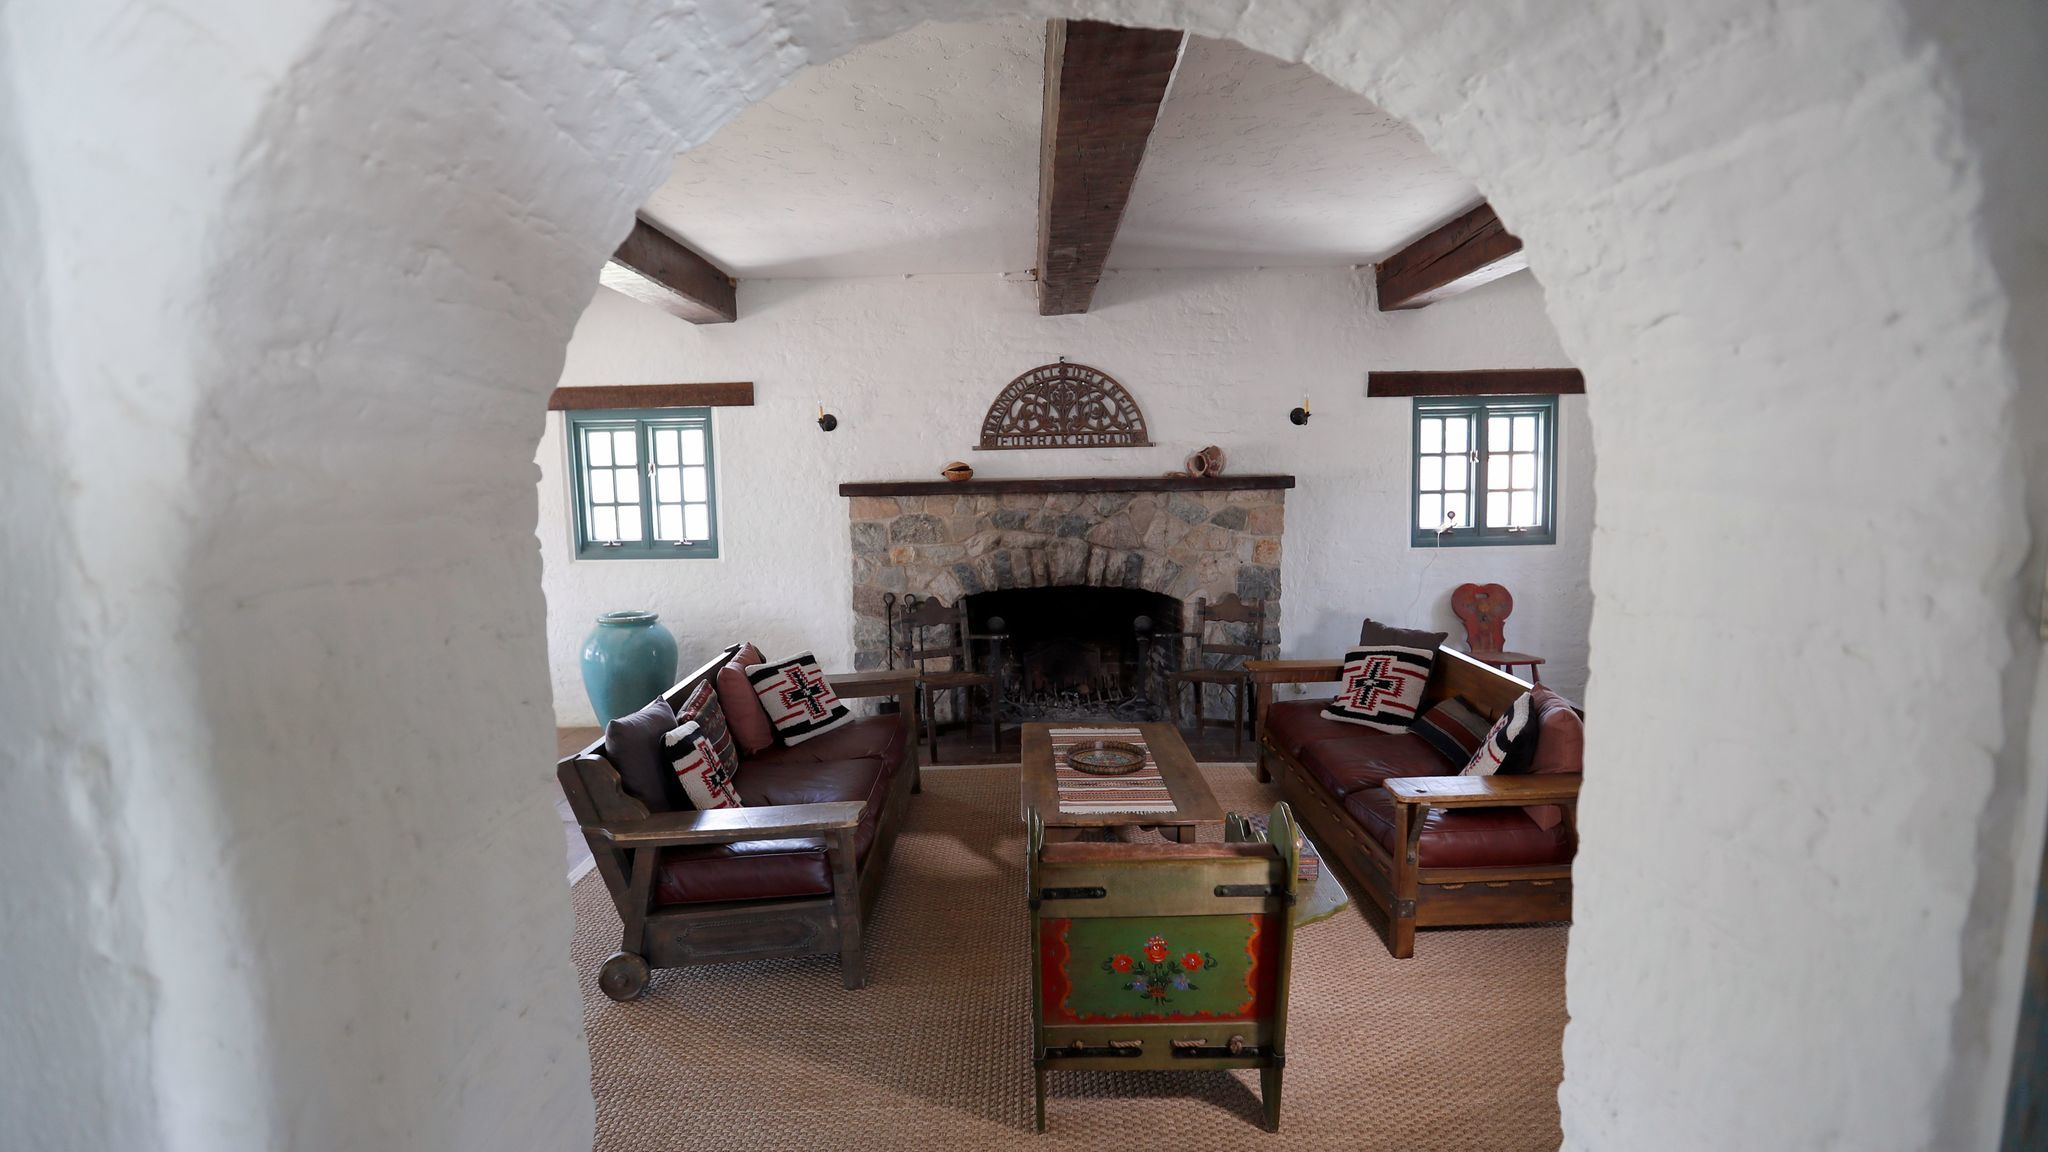 The home features a series of curved arches.